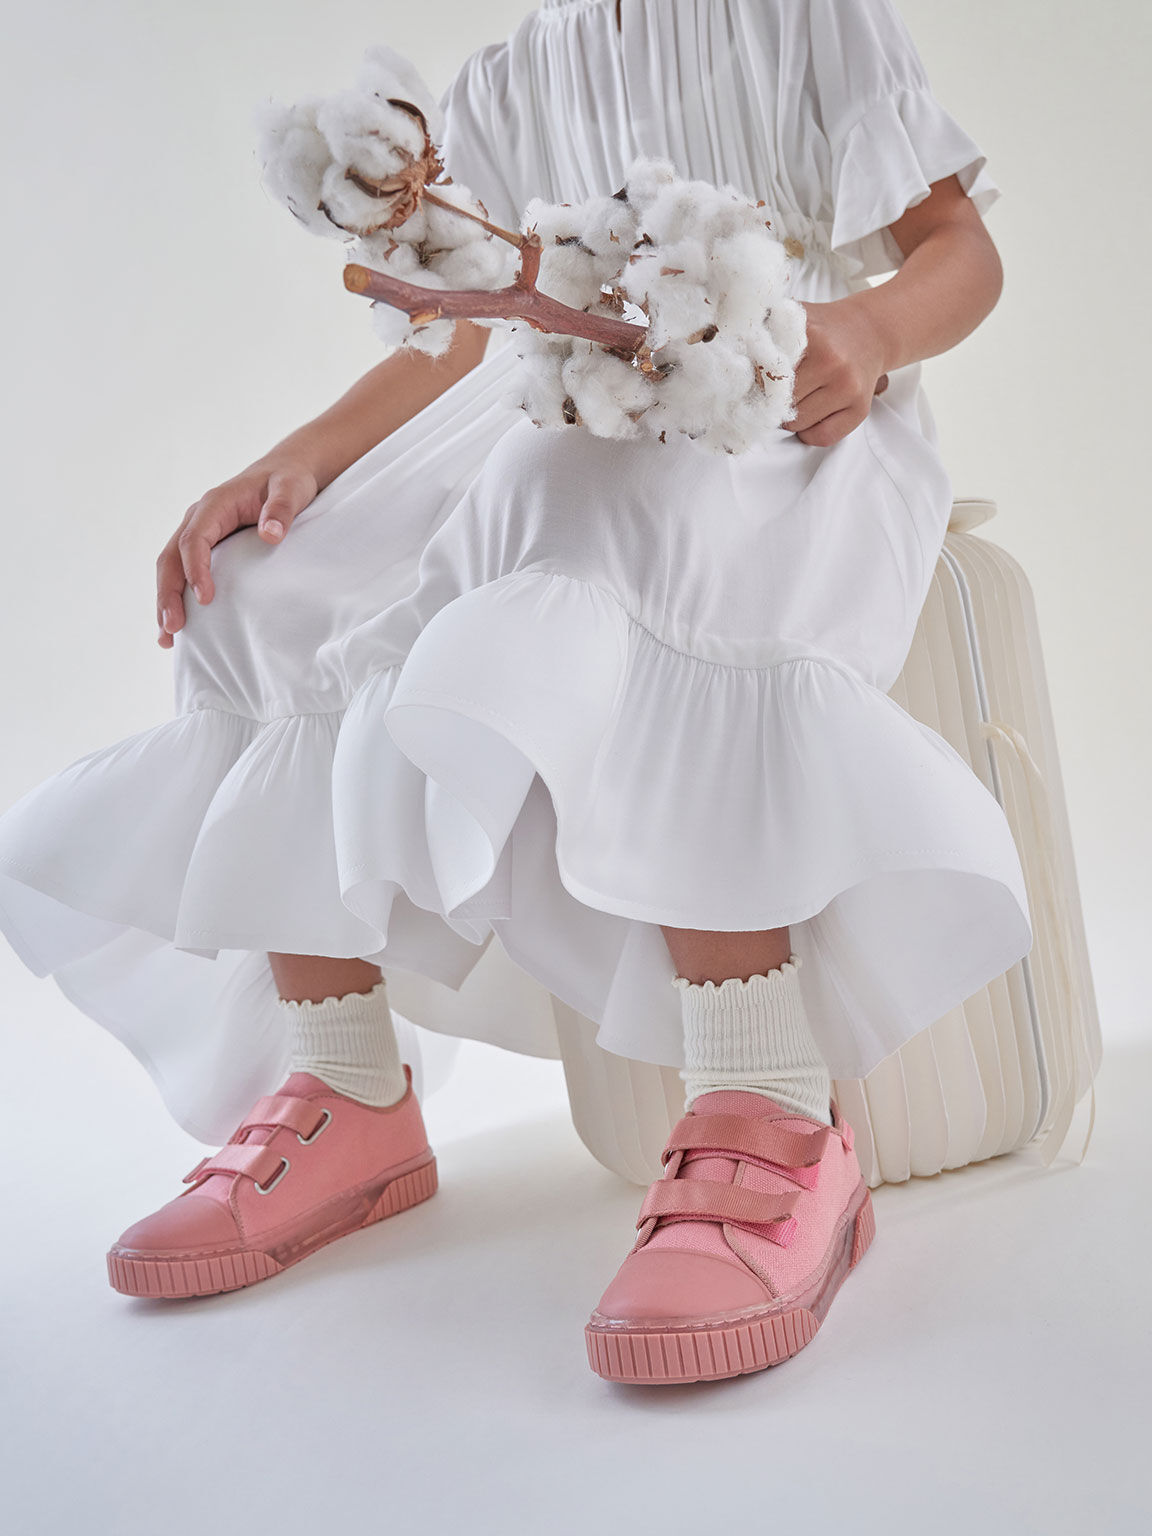 Purpose Collection 2021: Girls' Organic Cotton Sneakers, Pink, hi-res